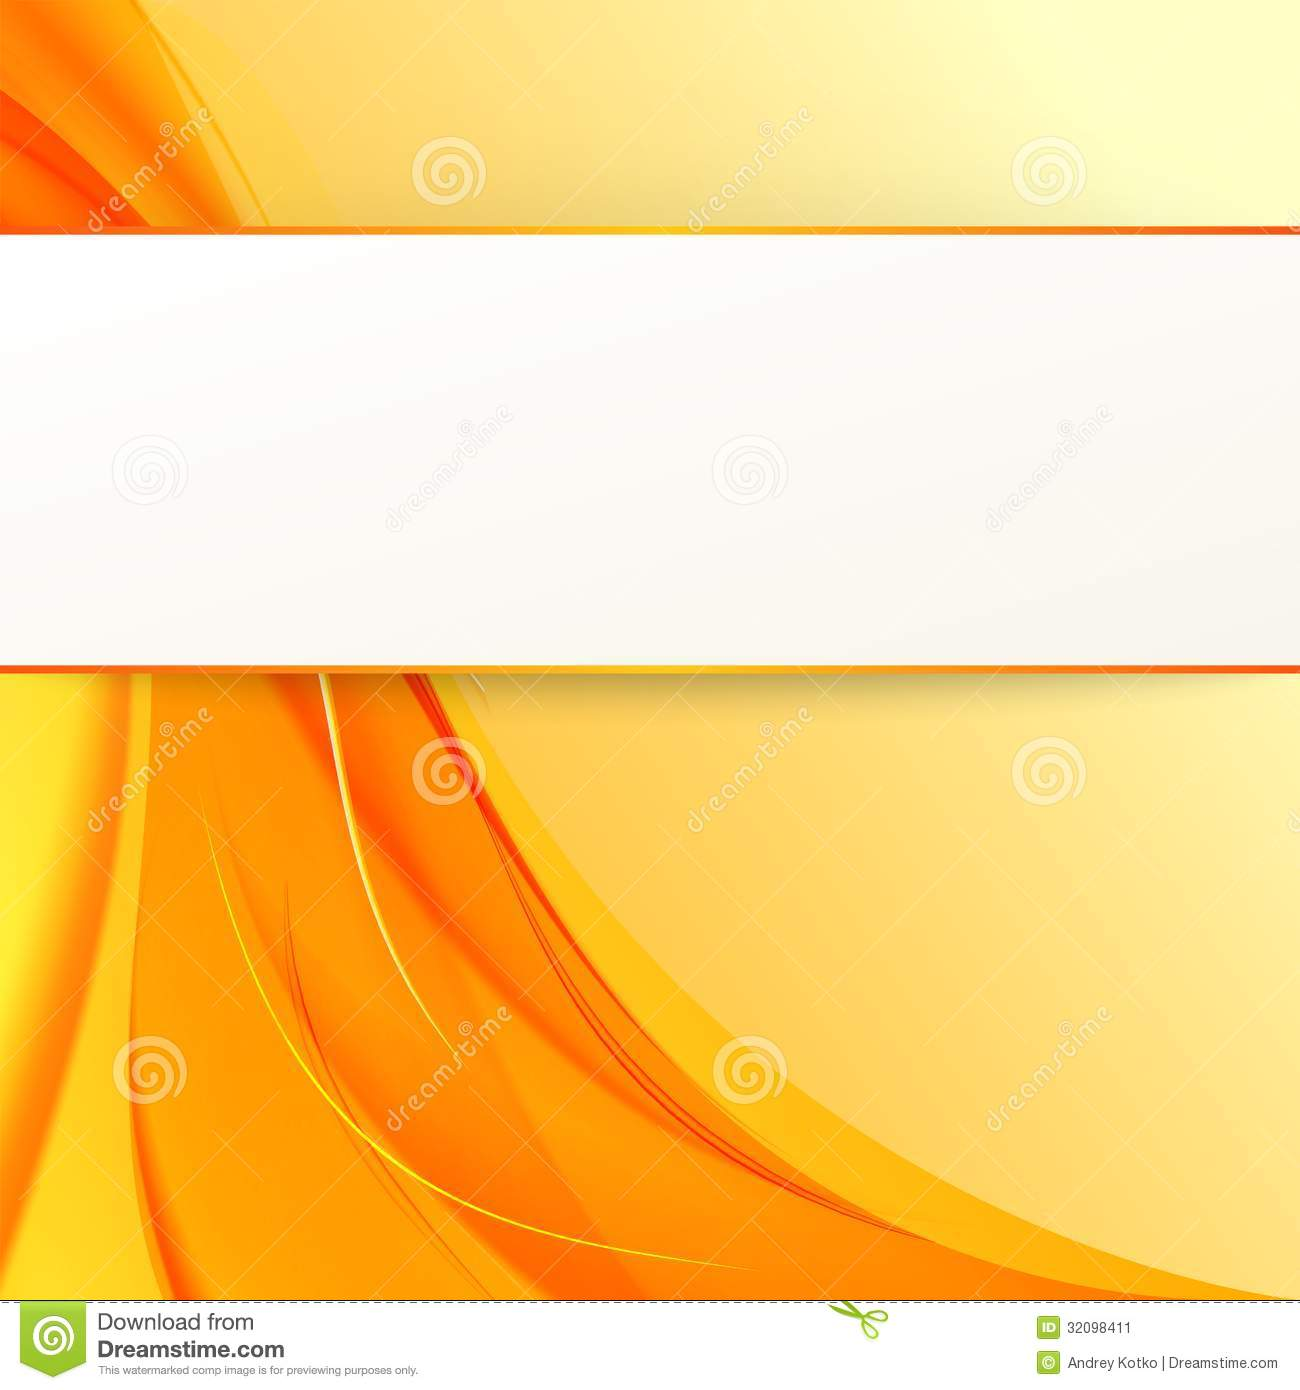 Background Images For Book Cover ~ Cover with orange smoke on yellow background stock image